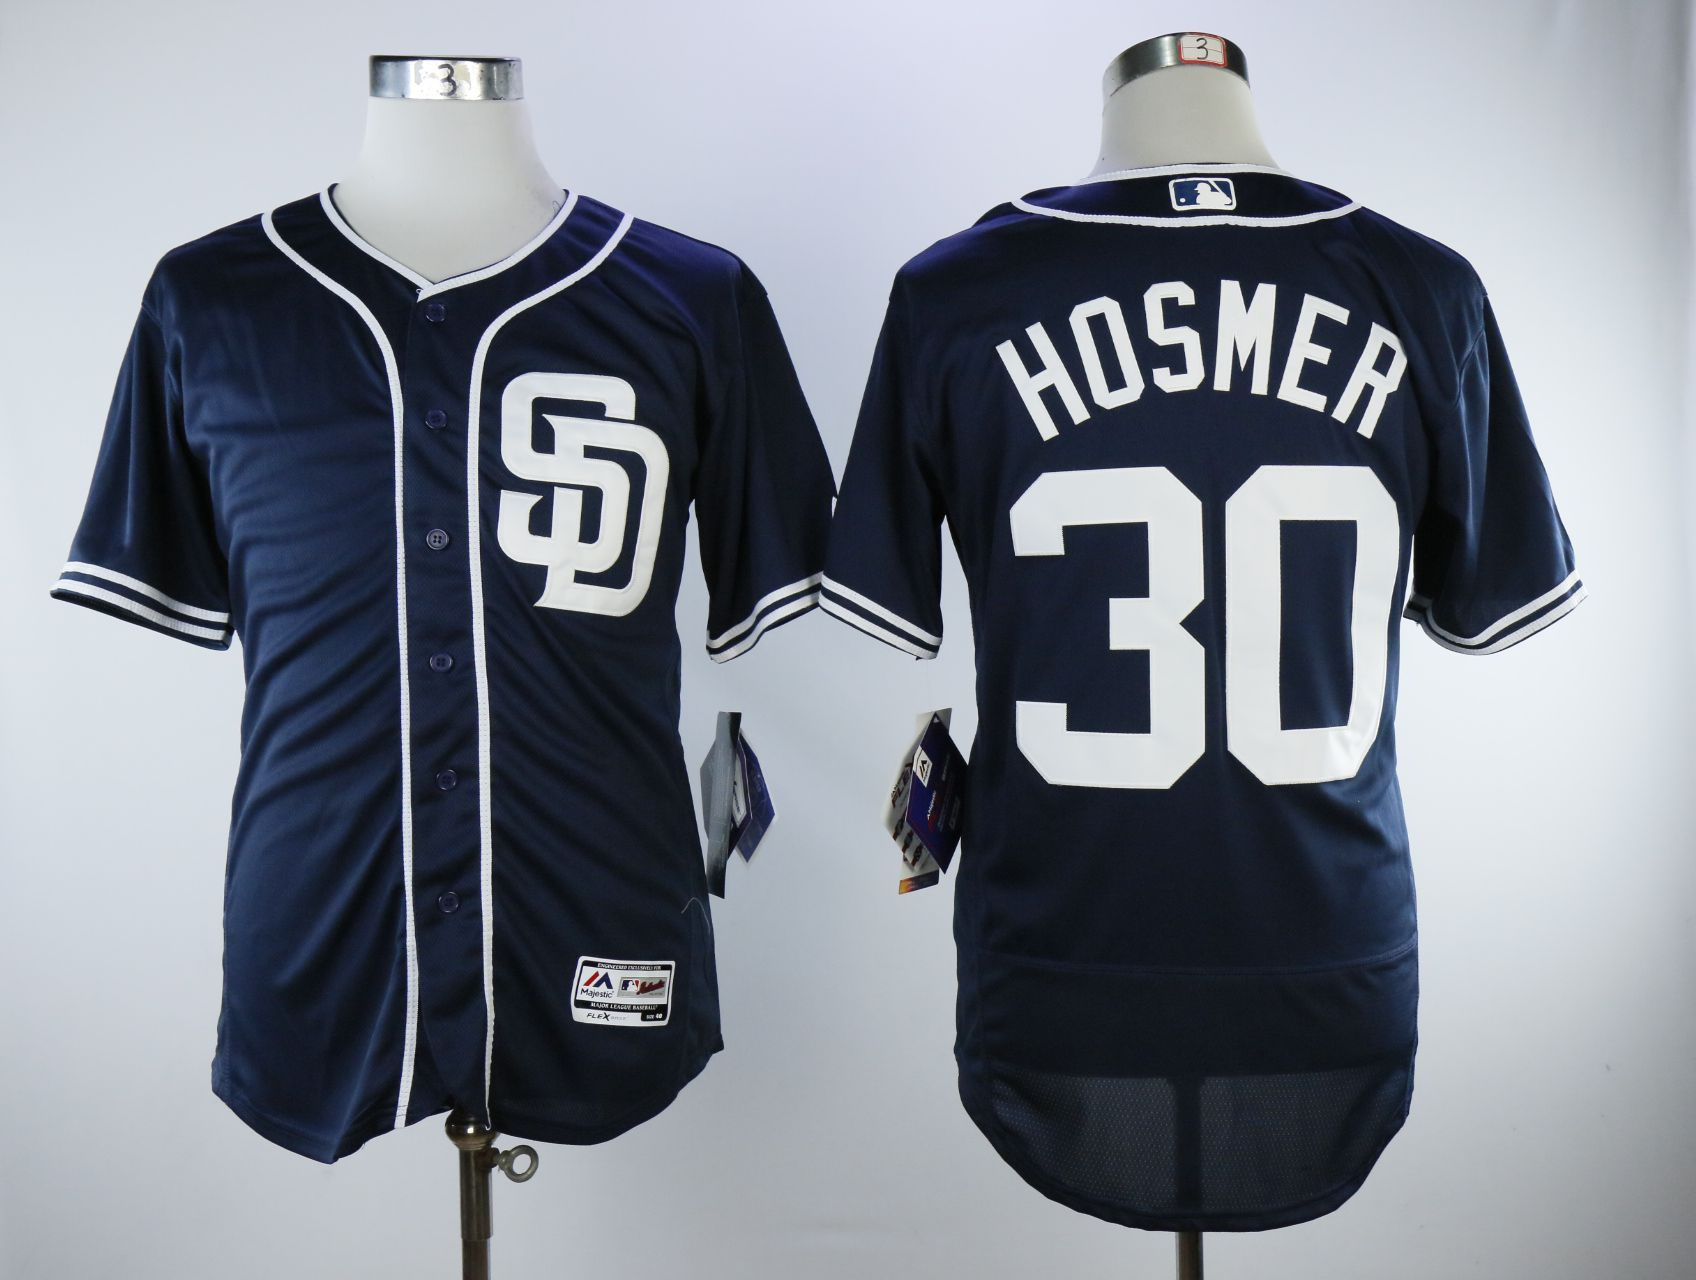 Men San Diego Padres 30 Hosmer Blue Elite MLB Jerseys